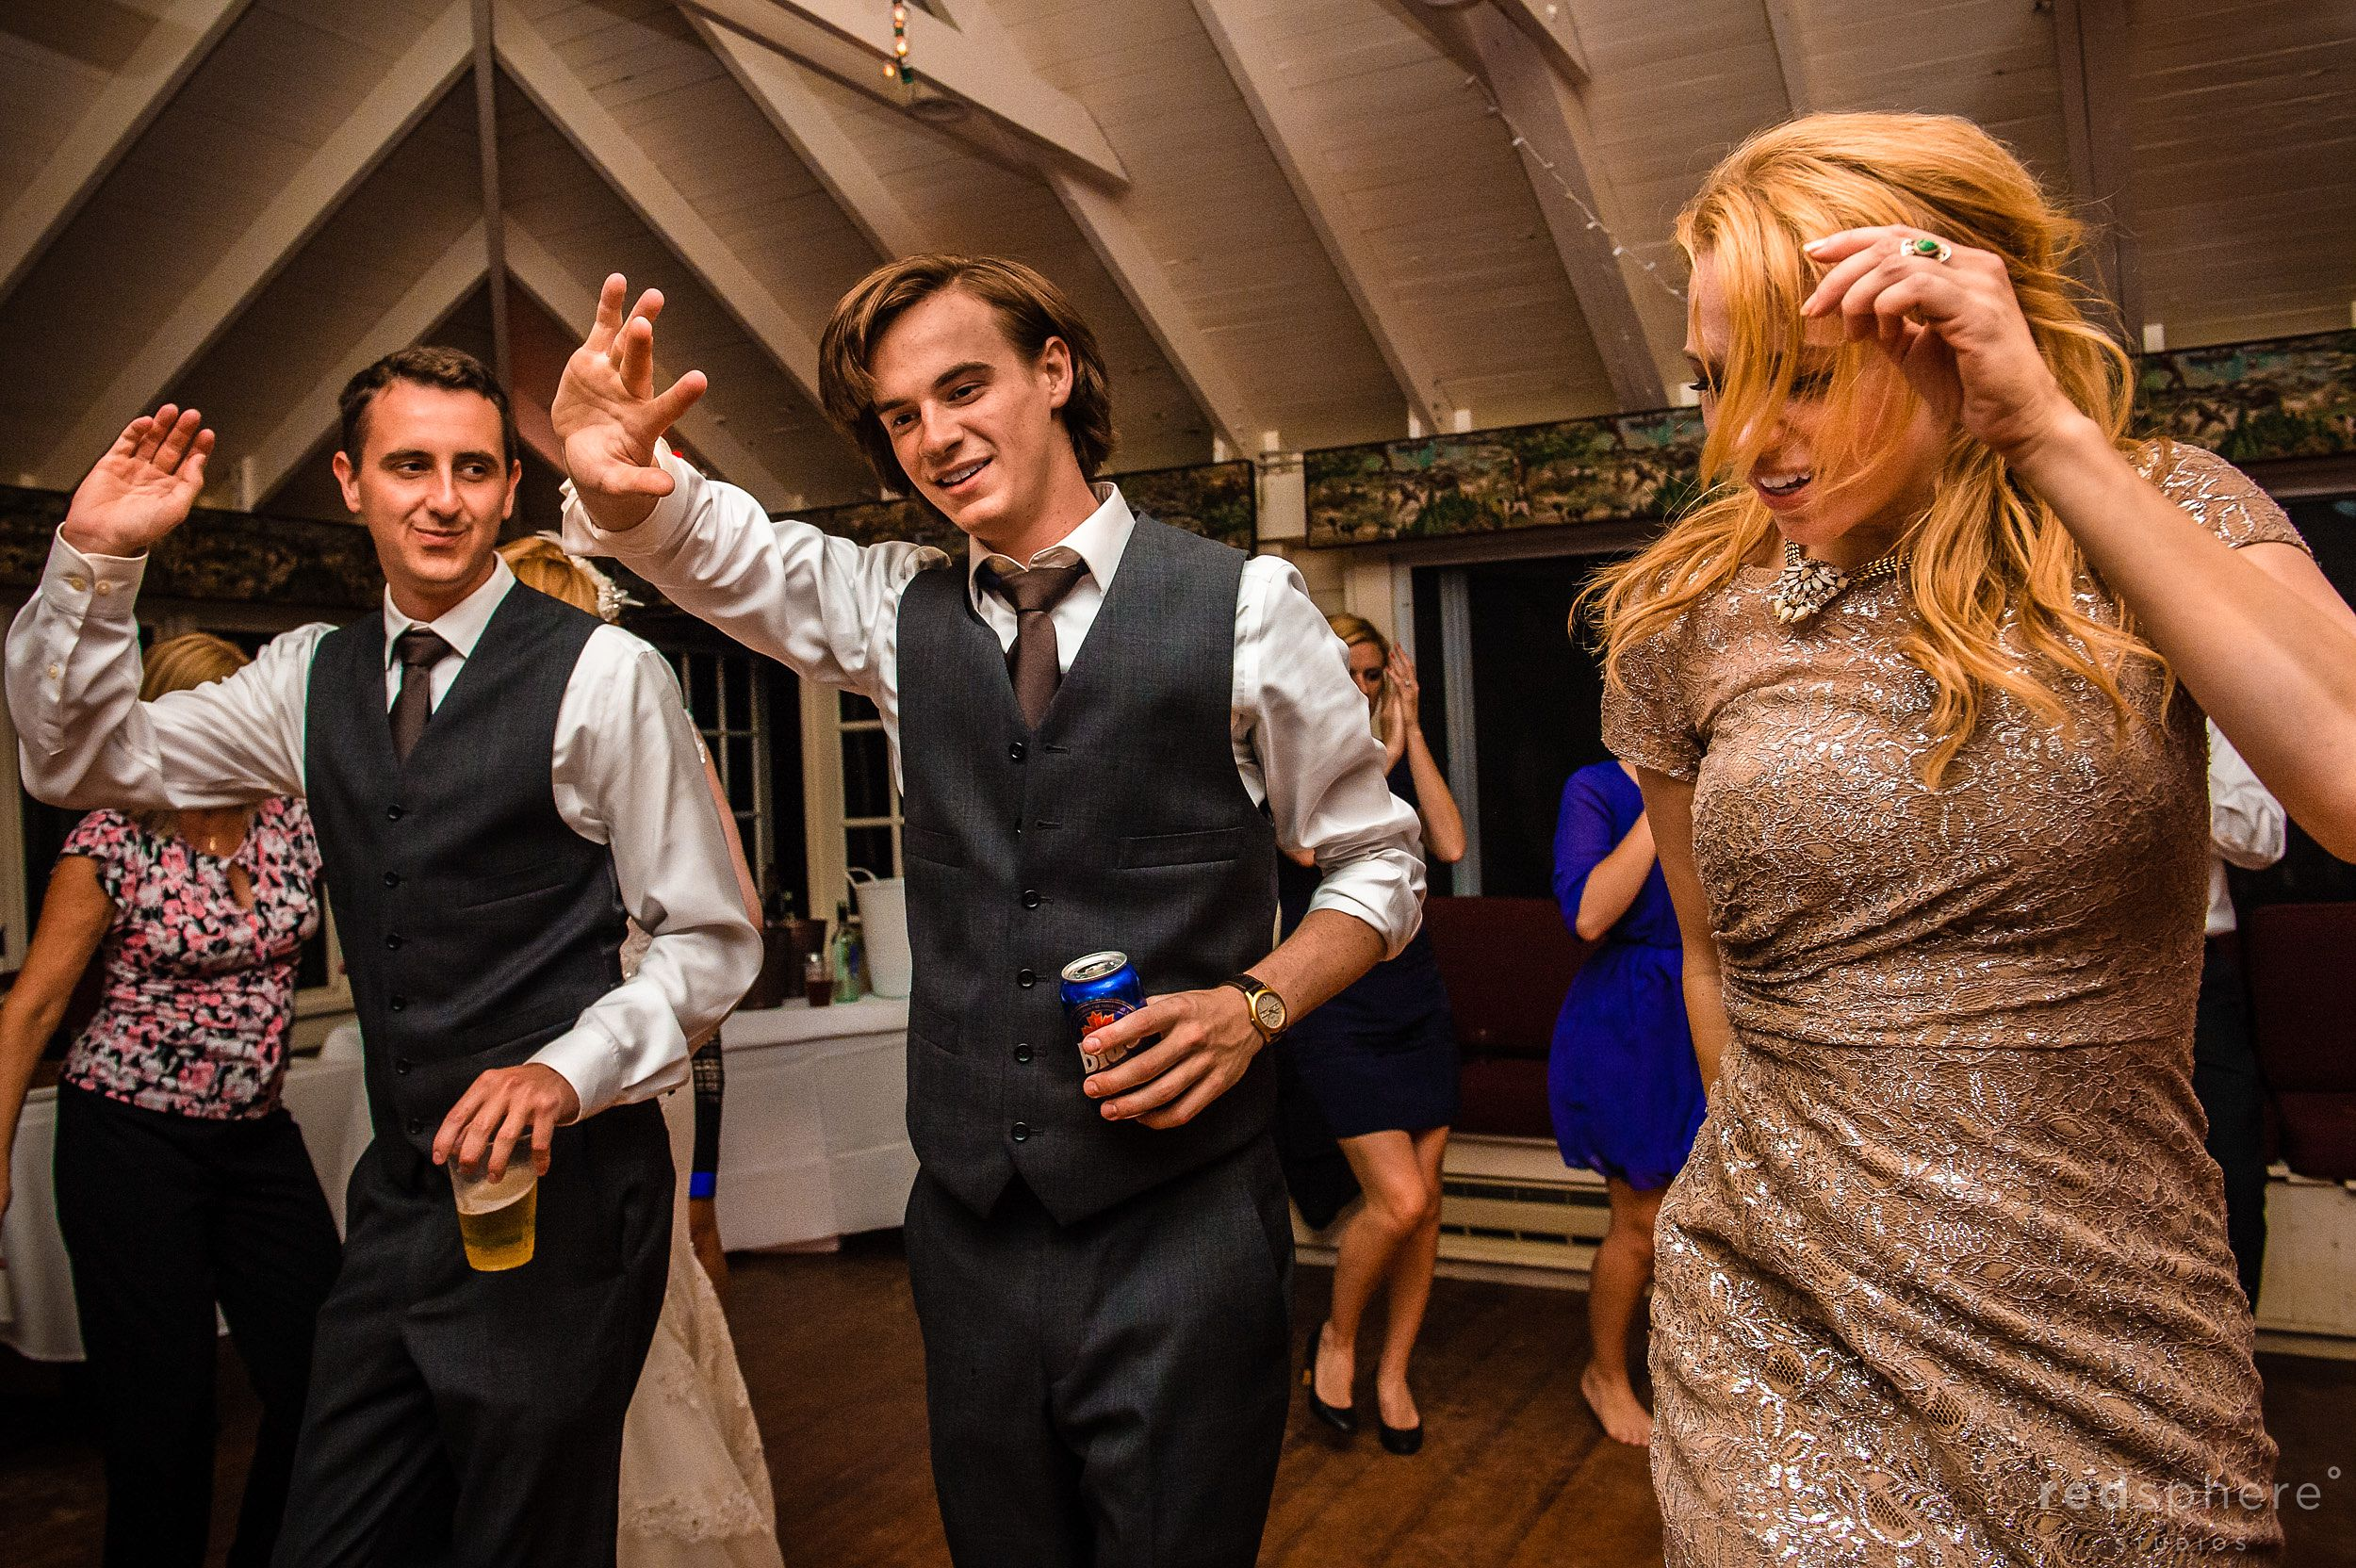 Bridesmaid and Groomsmen Dance Together at Chapel Island Wedding Reception